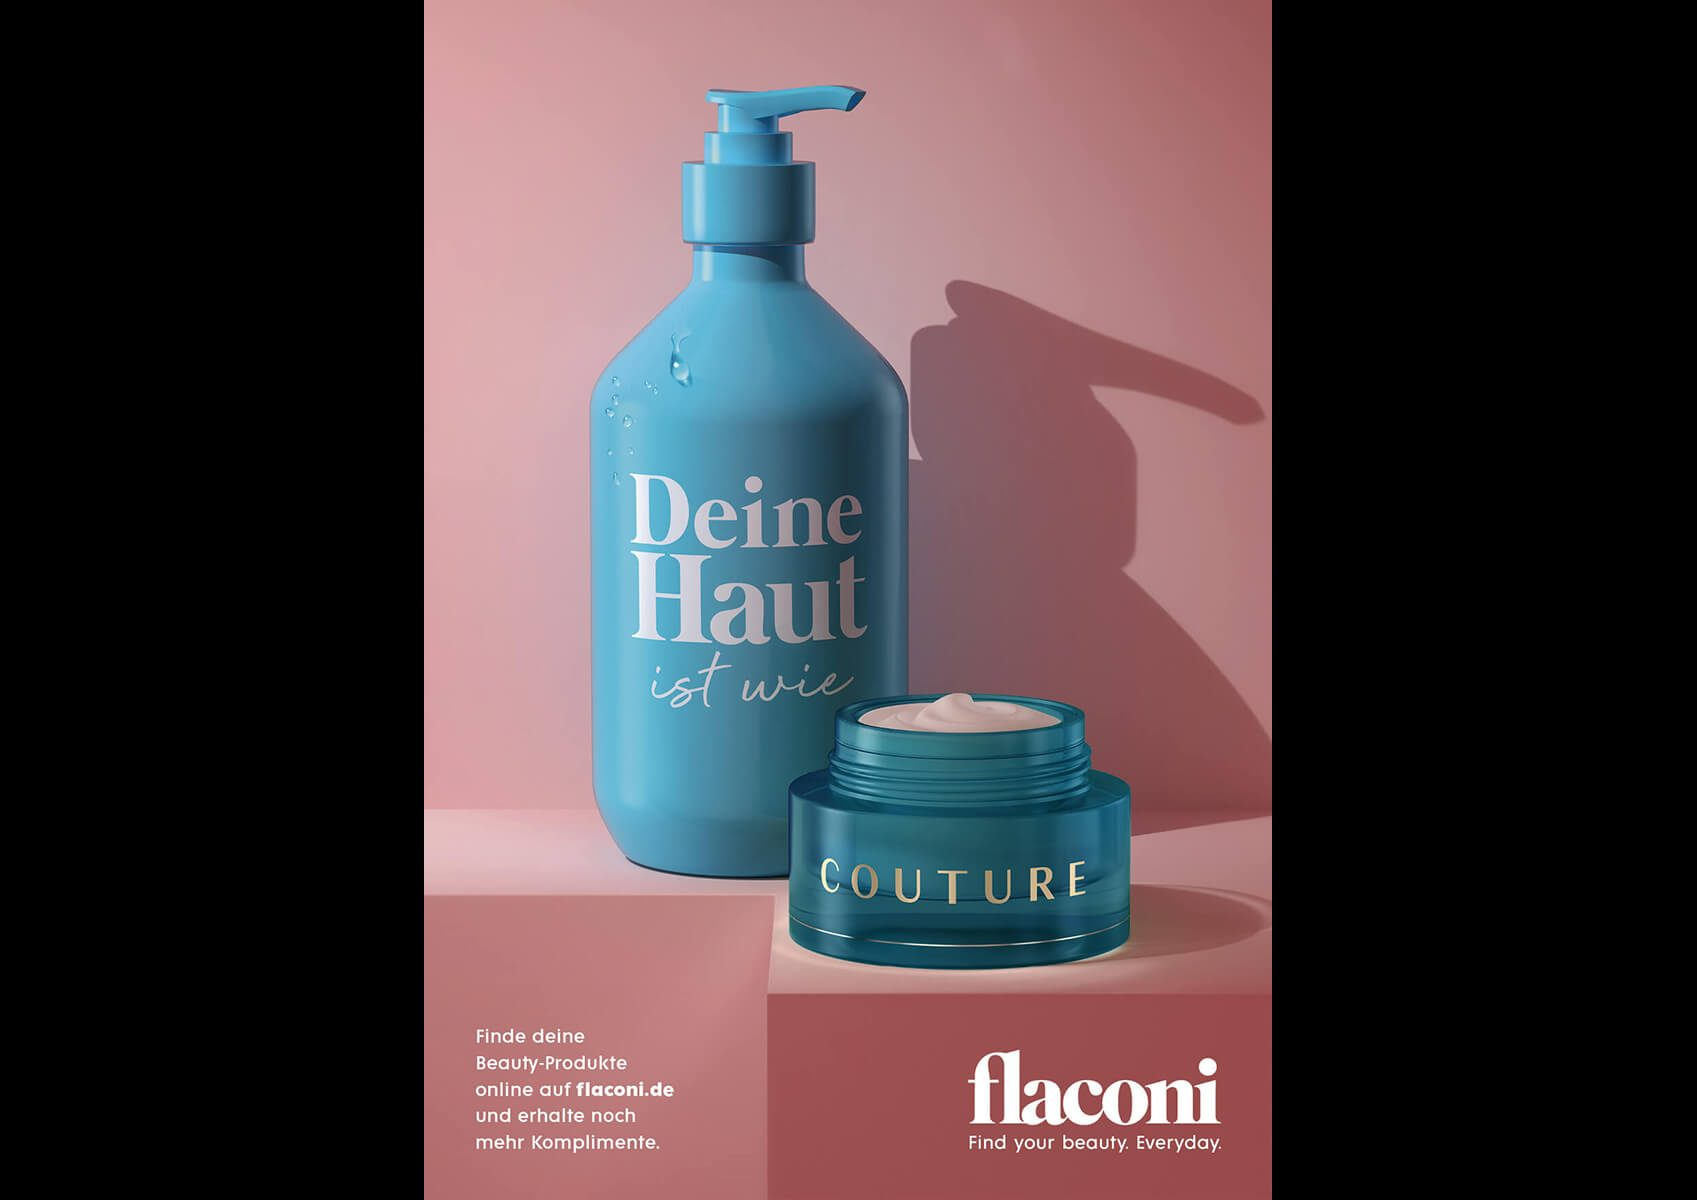 Vanite | Flaconi - OOH-campaign 3D product images & animations